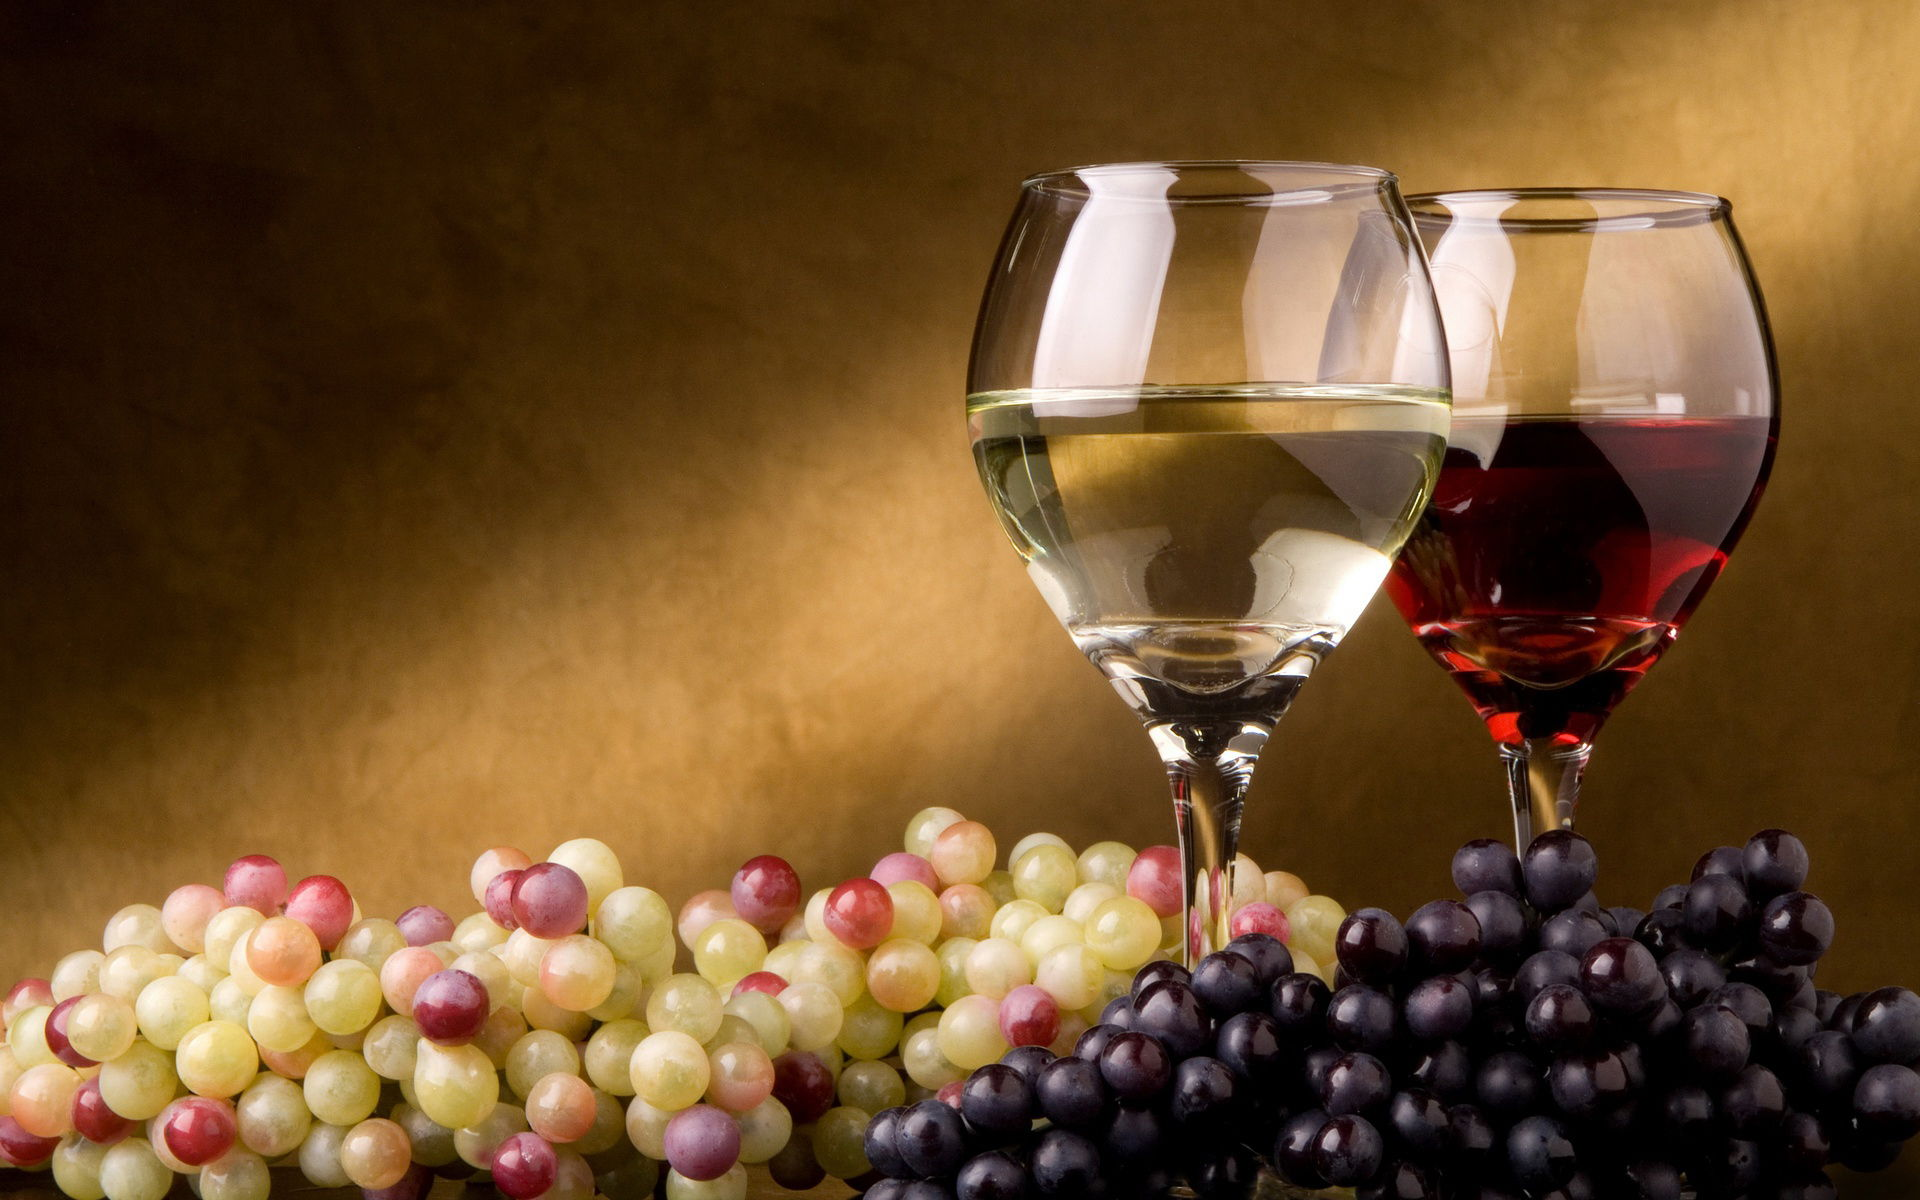 red-and-white-wine-and-grapes-desktop-background-wide-hd-wallpaper-pictures-full-free-download